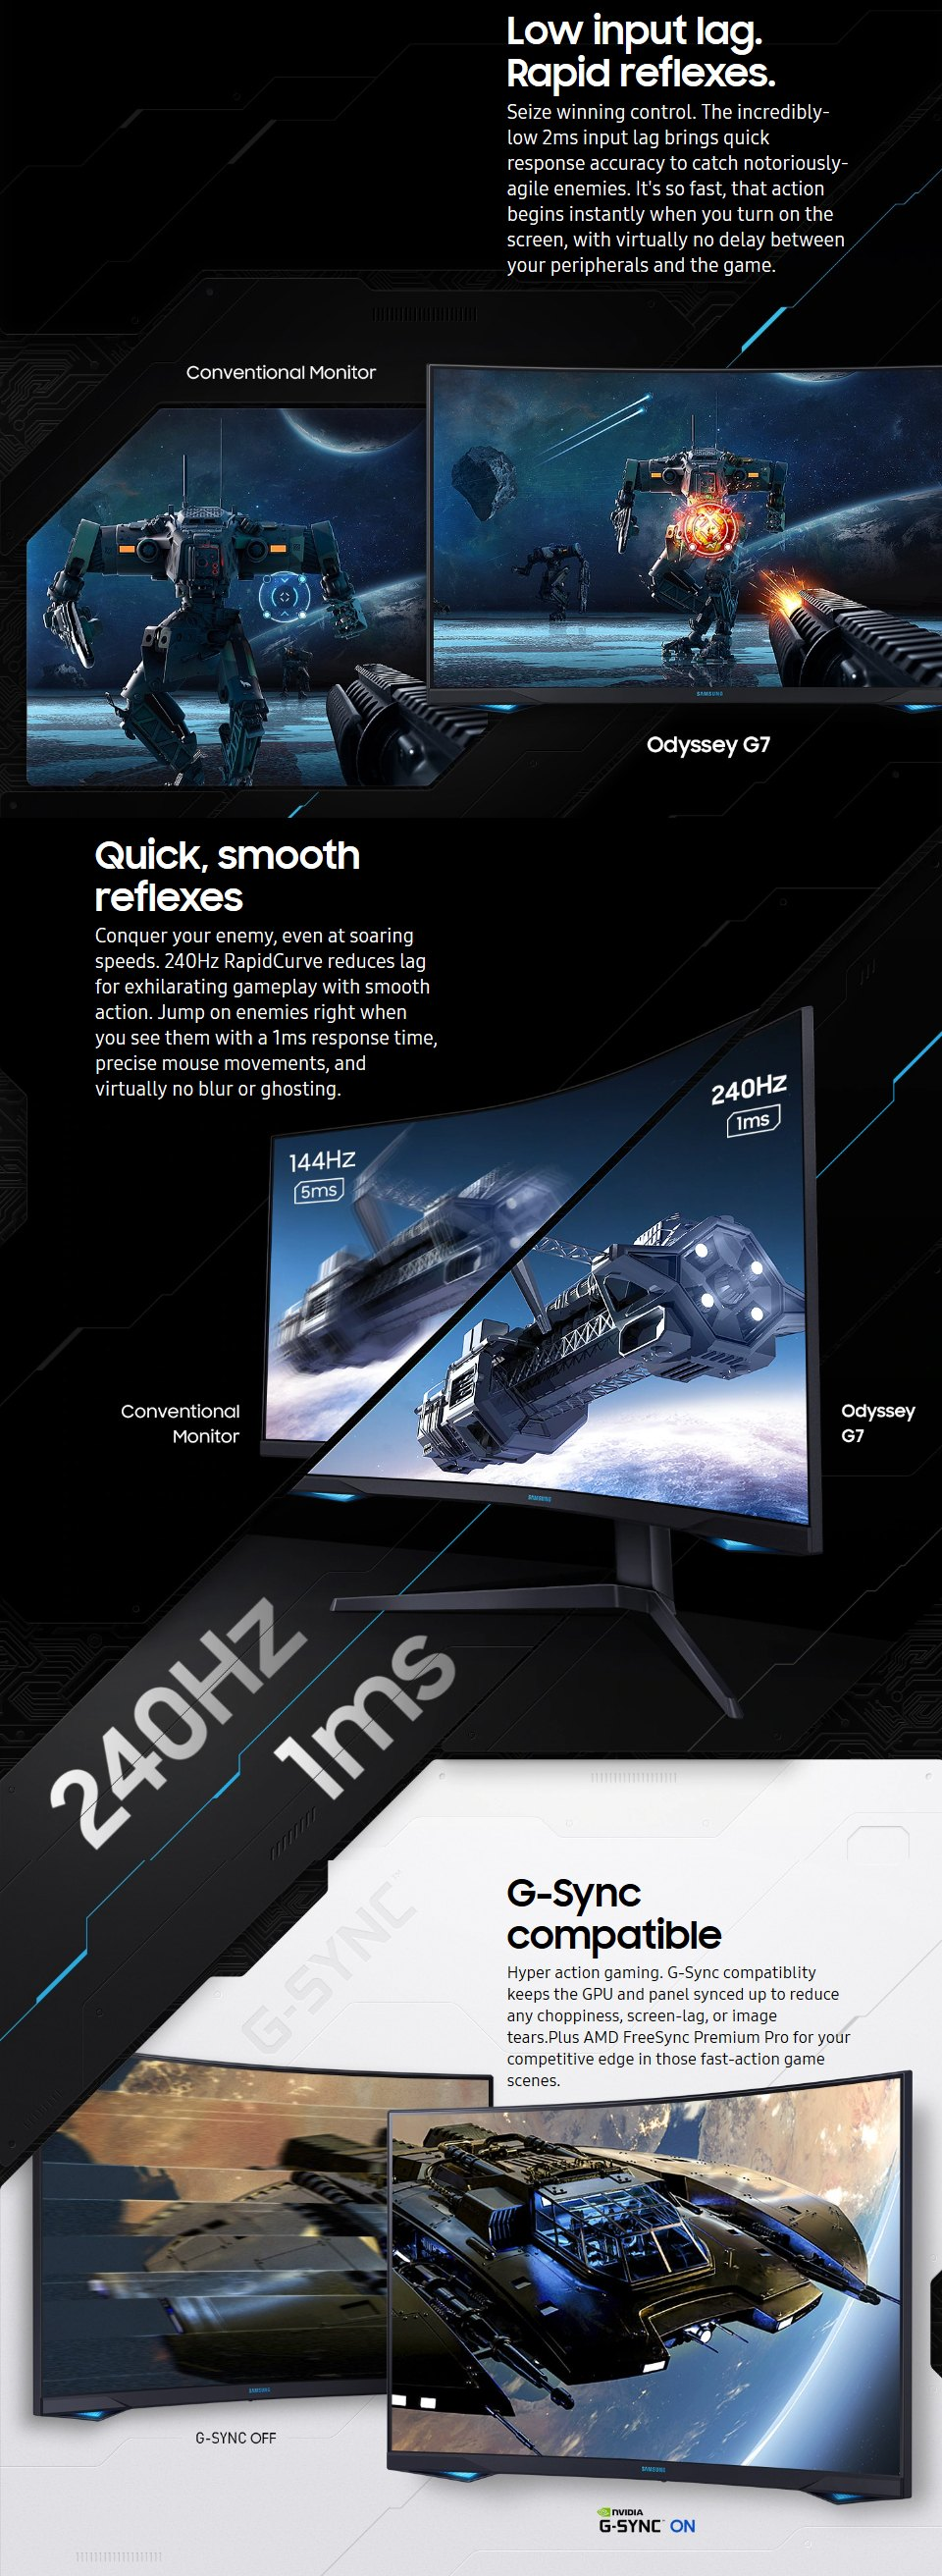 Samsung Odyssey G7 QHD 240Hz FreeSync QLED Curved 27in Monitor features 3